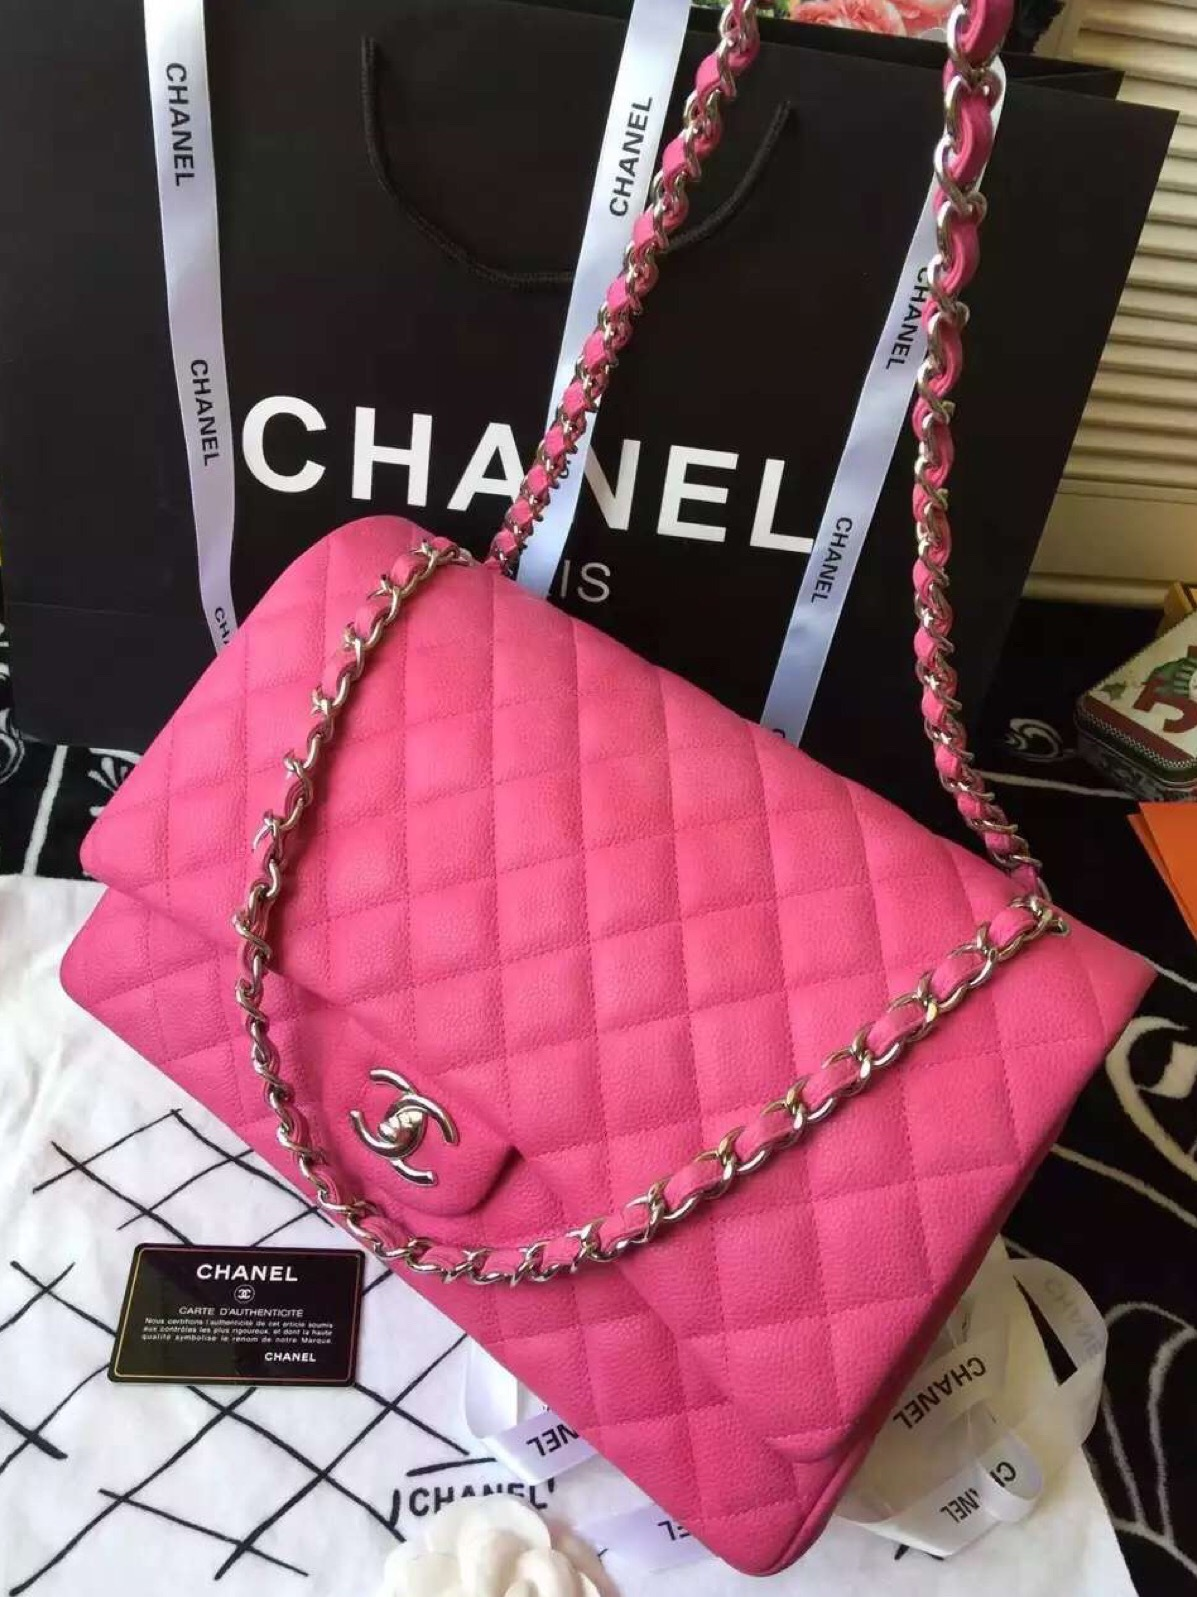 798d82324b2 Chanel Maxi Bag Original Price